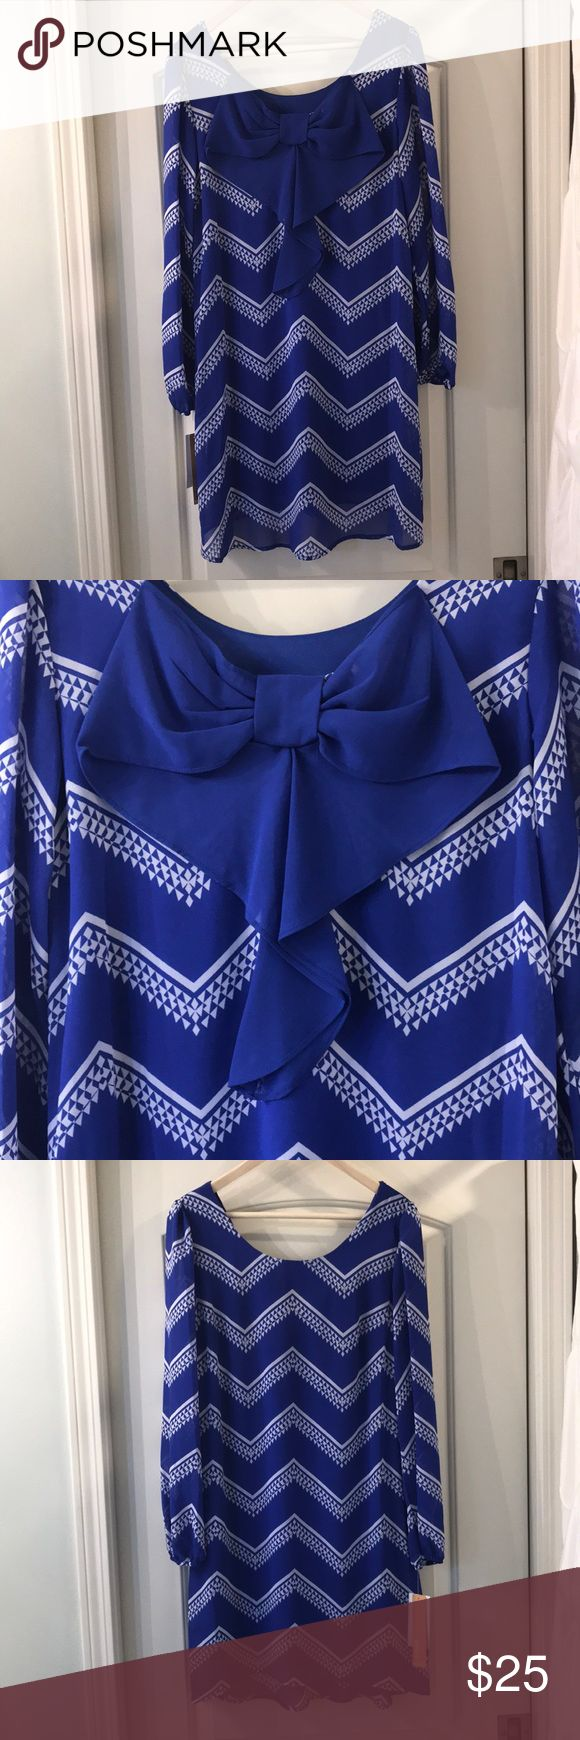 Takara dress M blue white chevron bow  long sleeve NWT Takara size M blue and white Chevron dress with adorable bow on the back. Sleeves are sheer. This dress is perfect for the beach, spring break, honeymoon, or night out. The dress hits mid thigh above the knee. Takara Dresses Midi